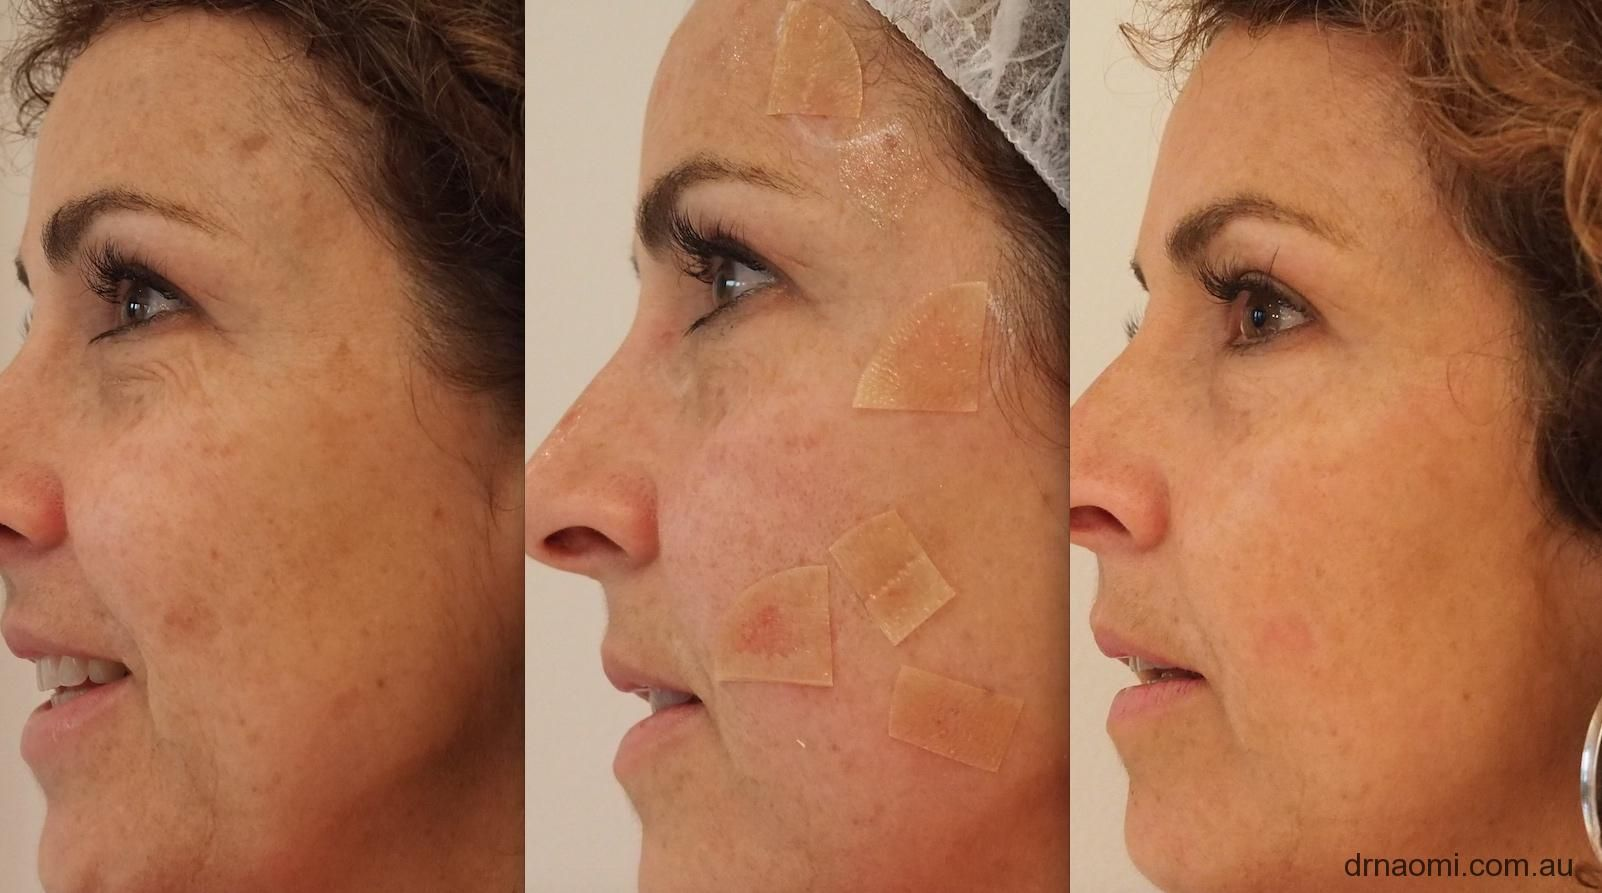 After Laser Treatment for Age Spots Photos Using creams to